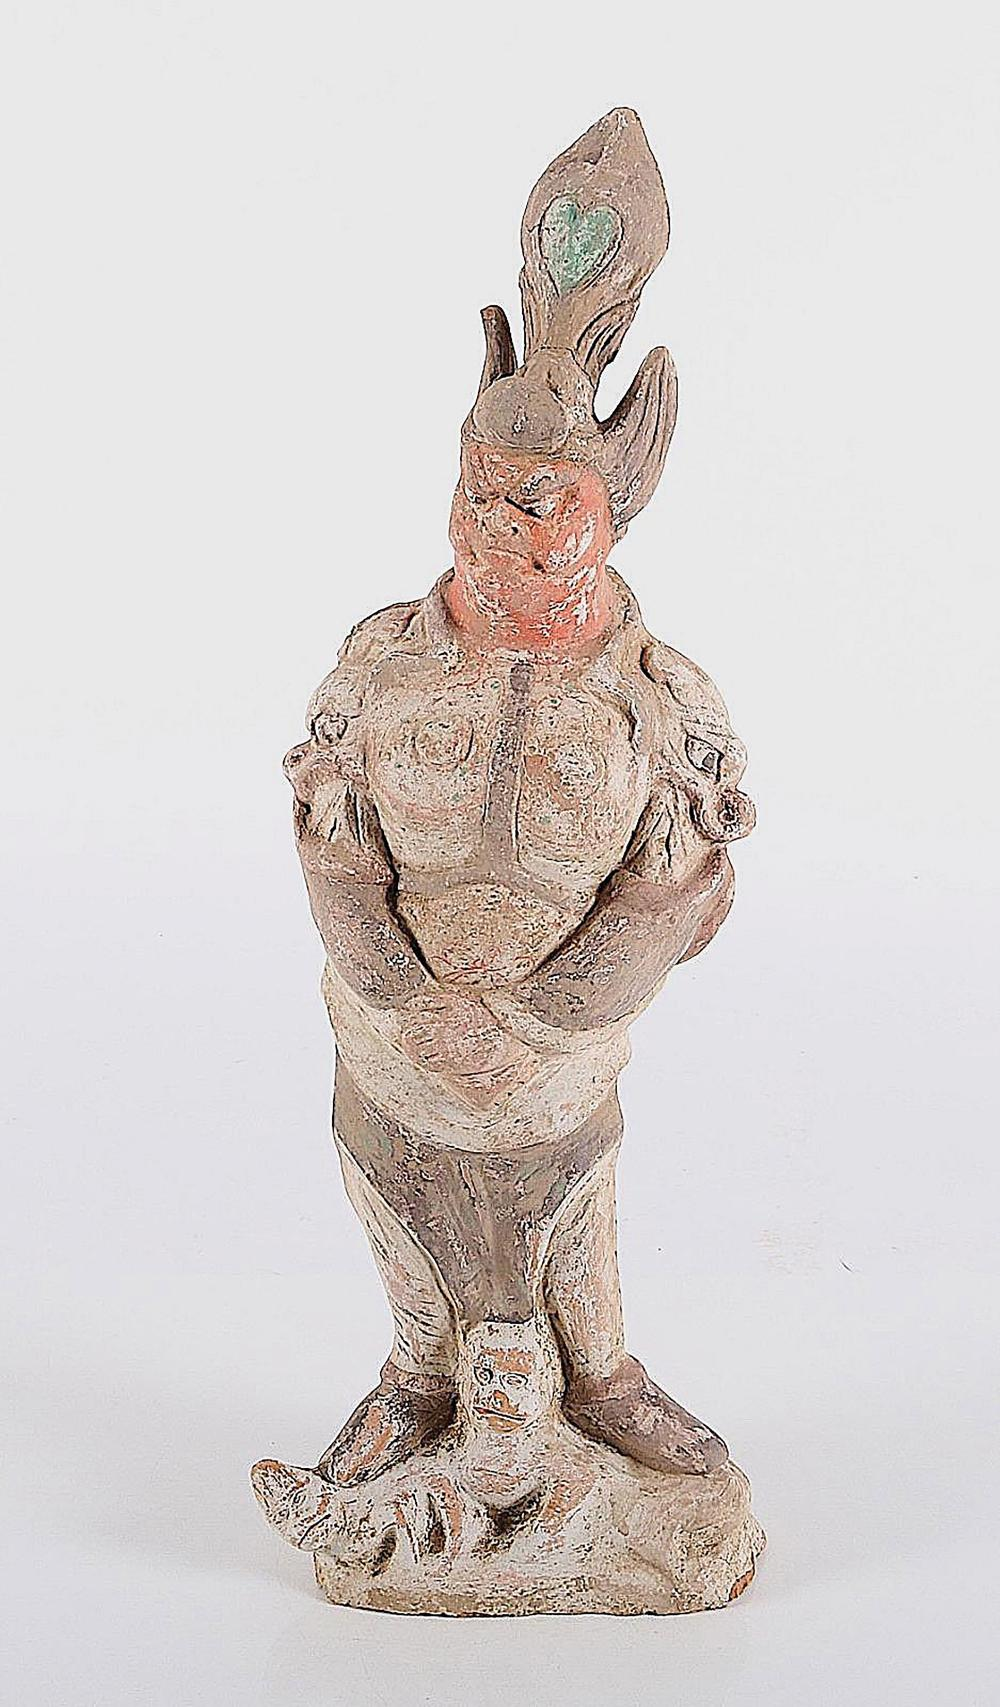 Asian Art, Important Private Collections